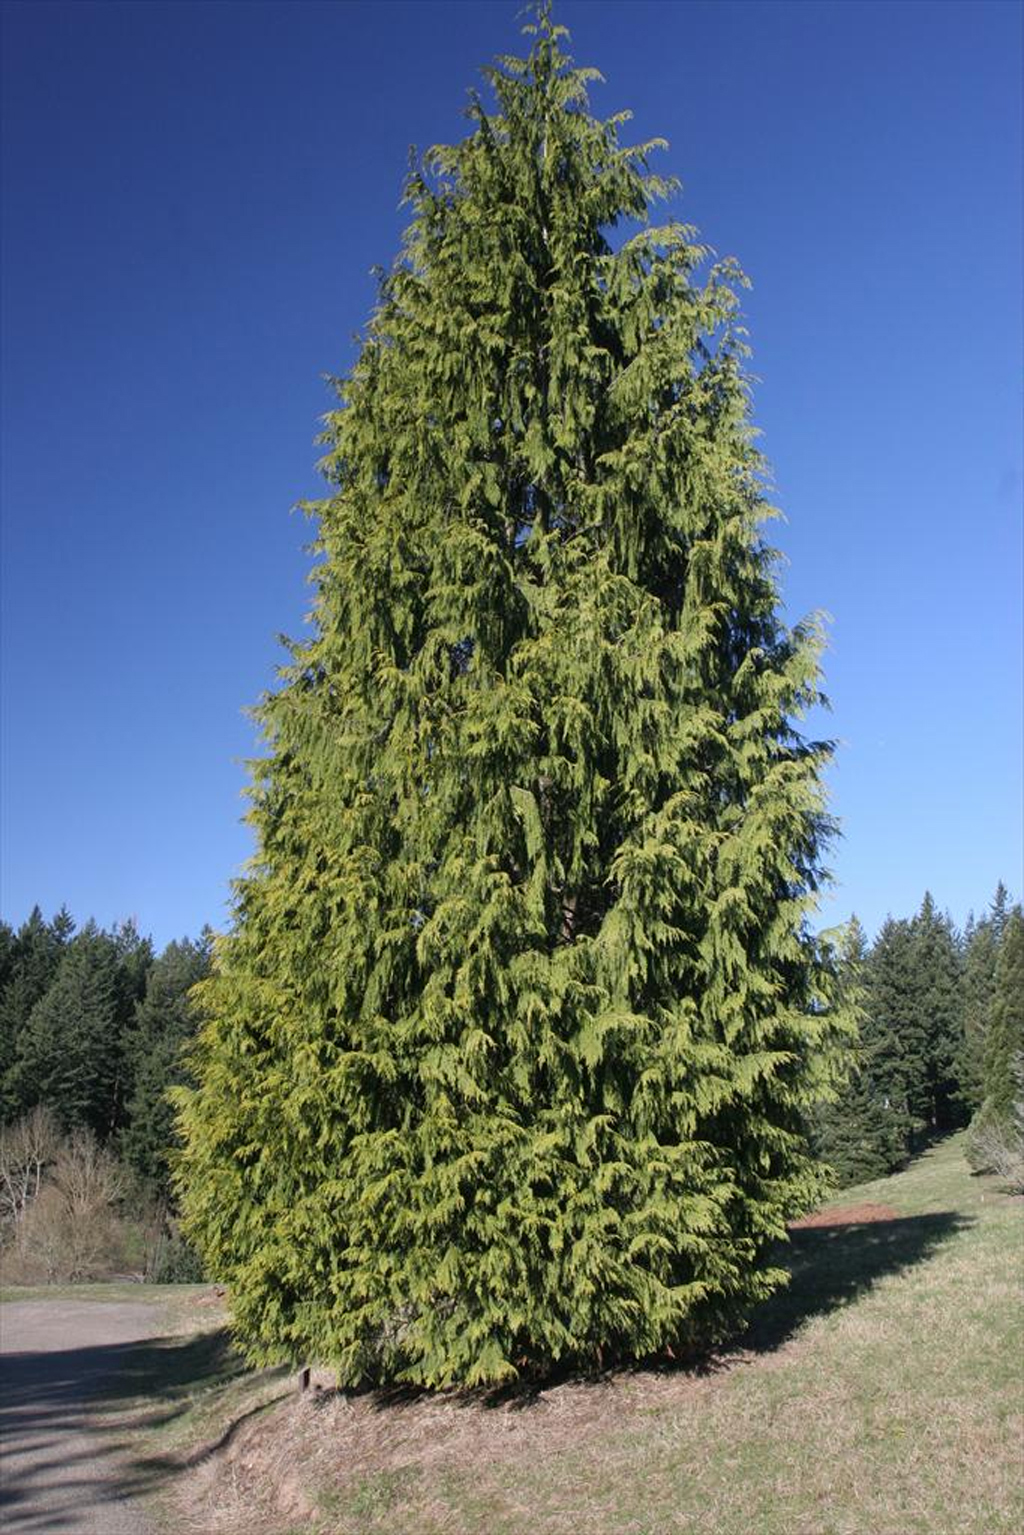 Western Red Cedar ~ Modern plant communities in the puget lowland begin to